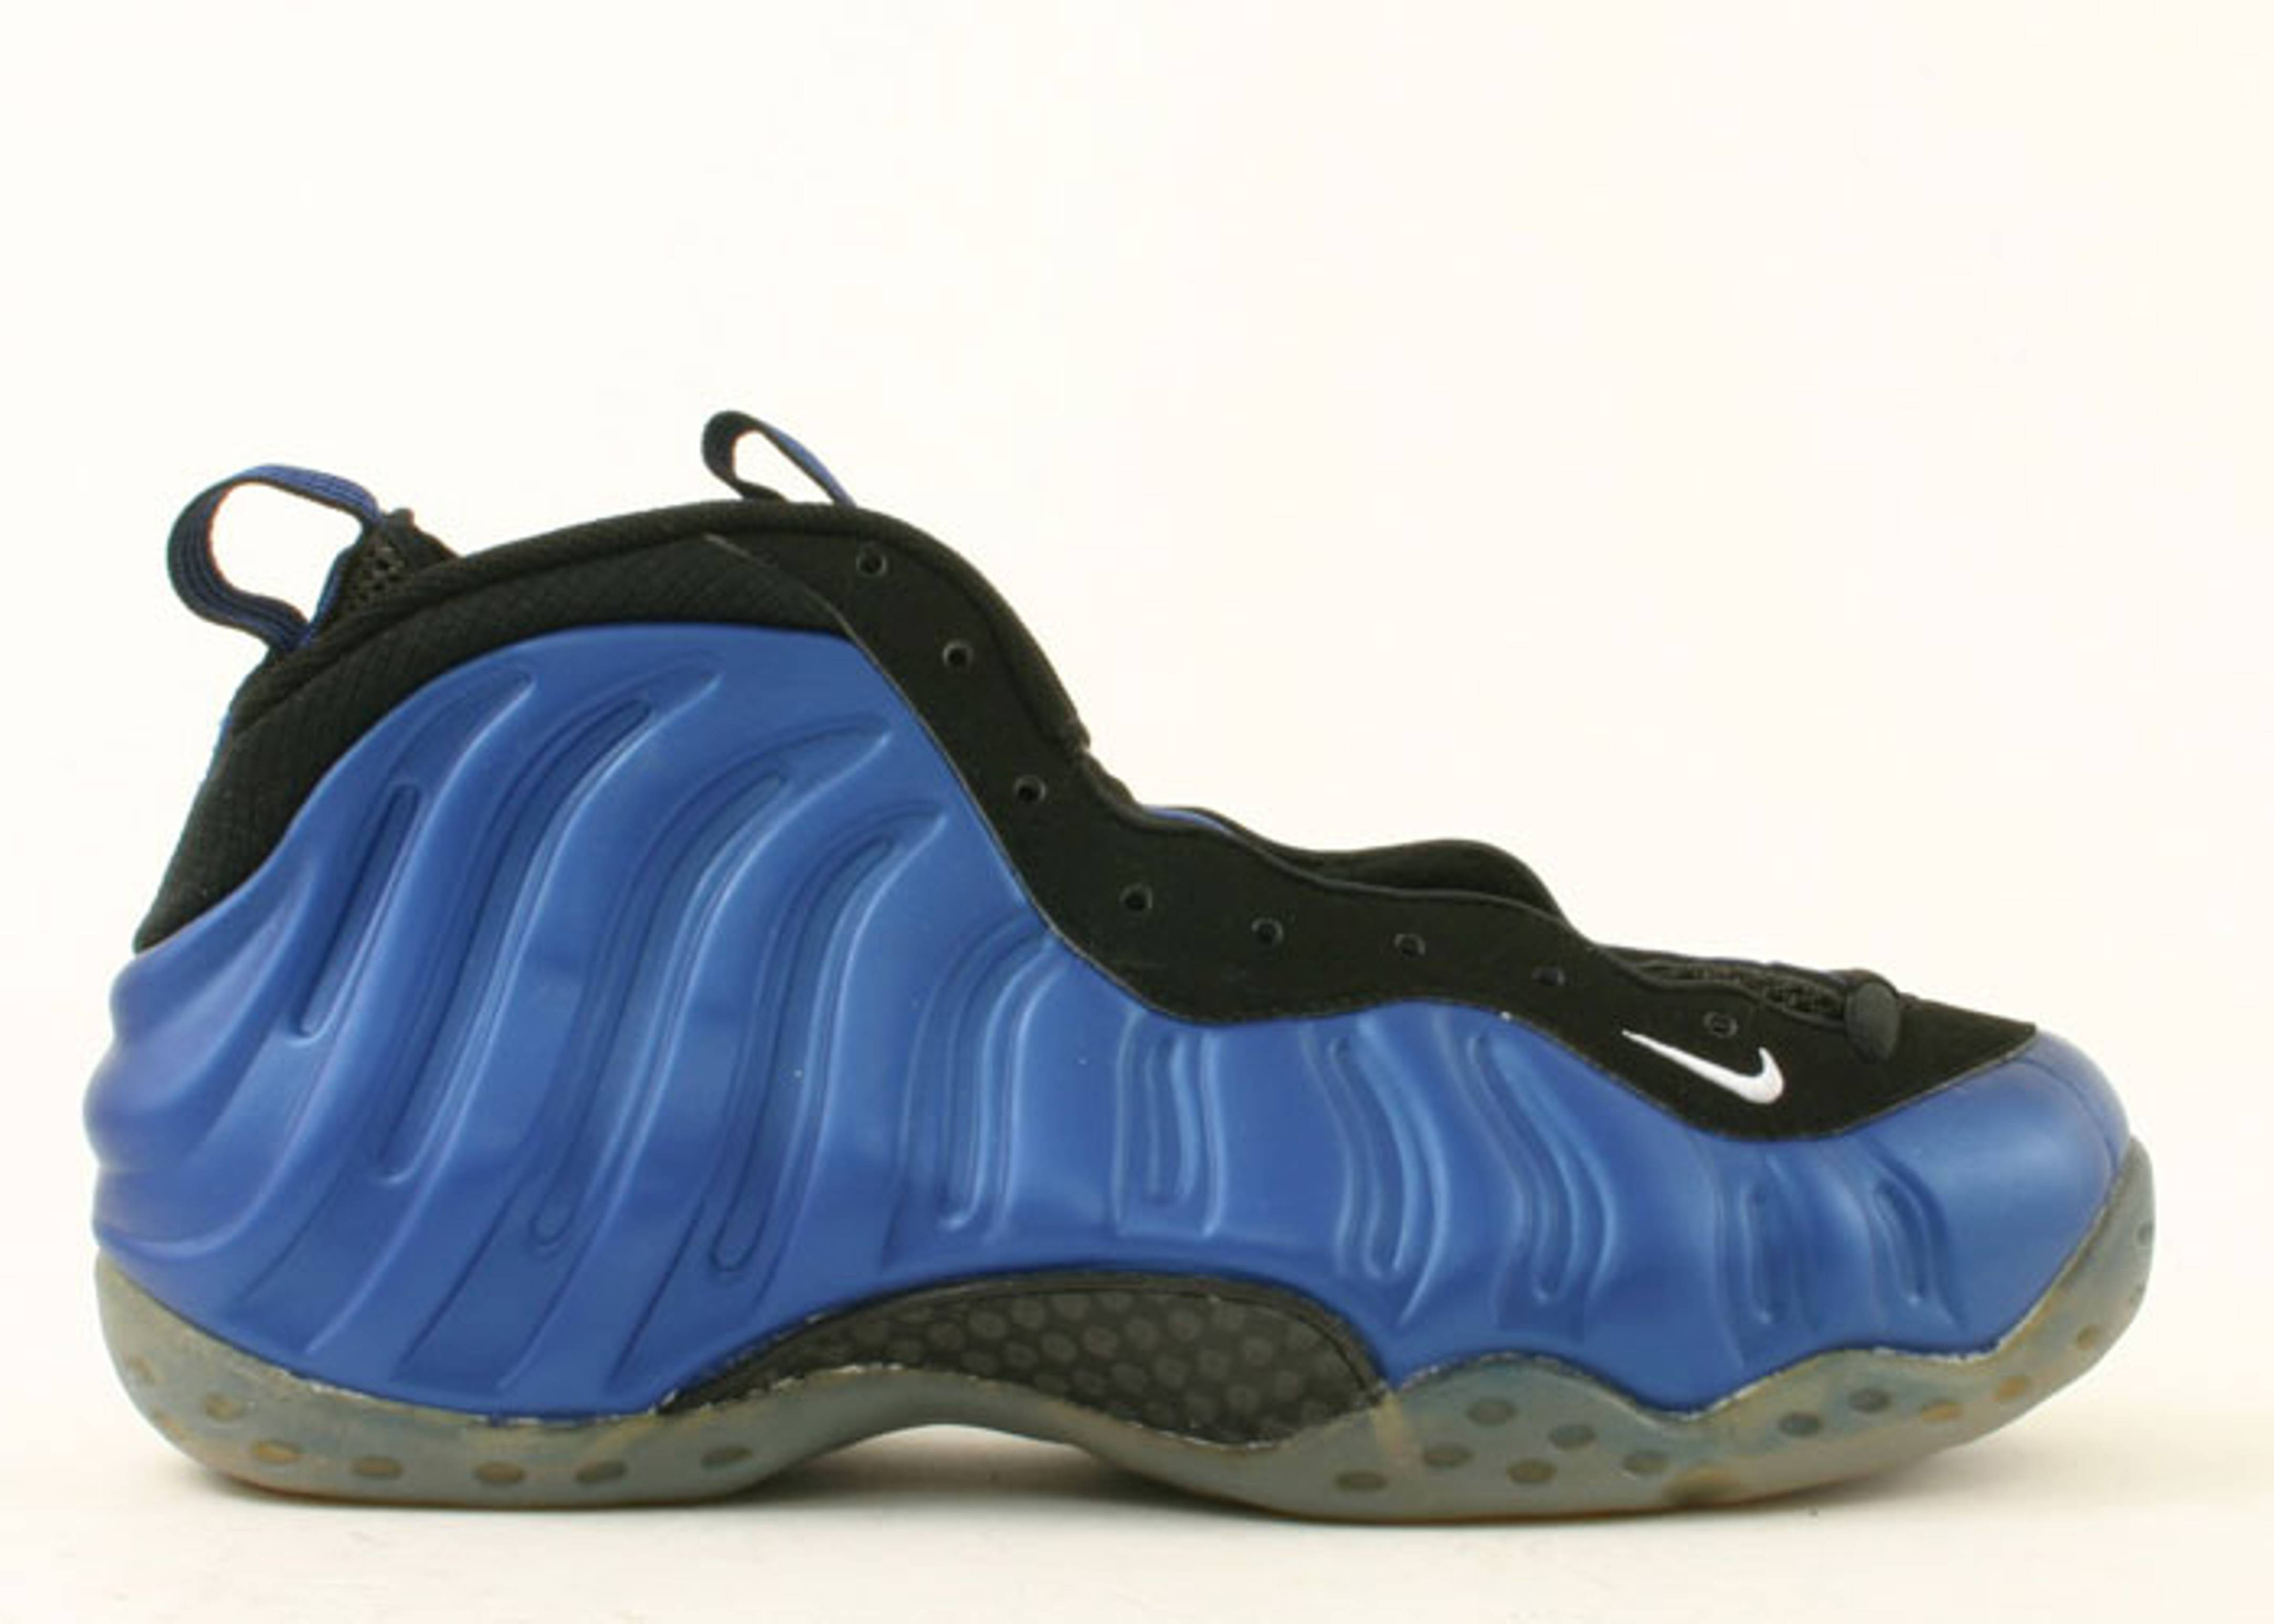 online store 6cfee 55202 nike. air foamposite one